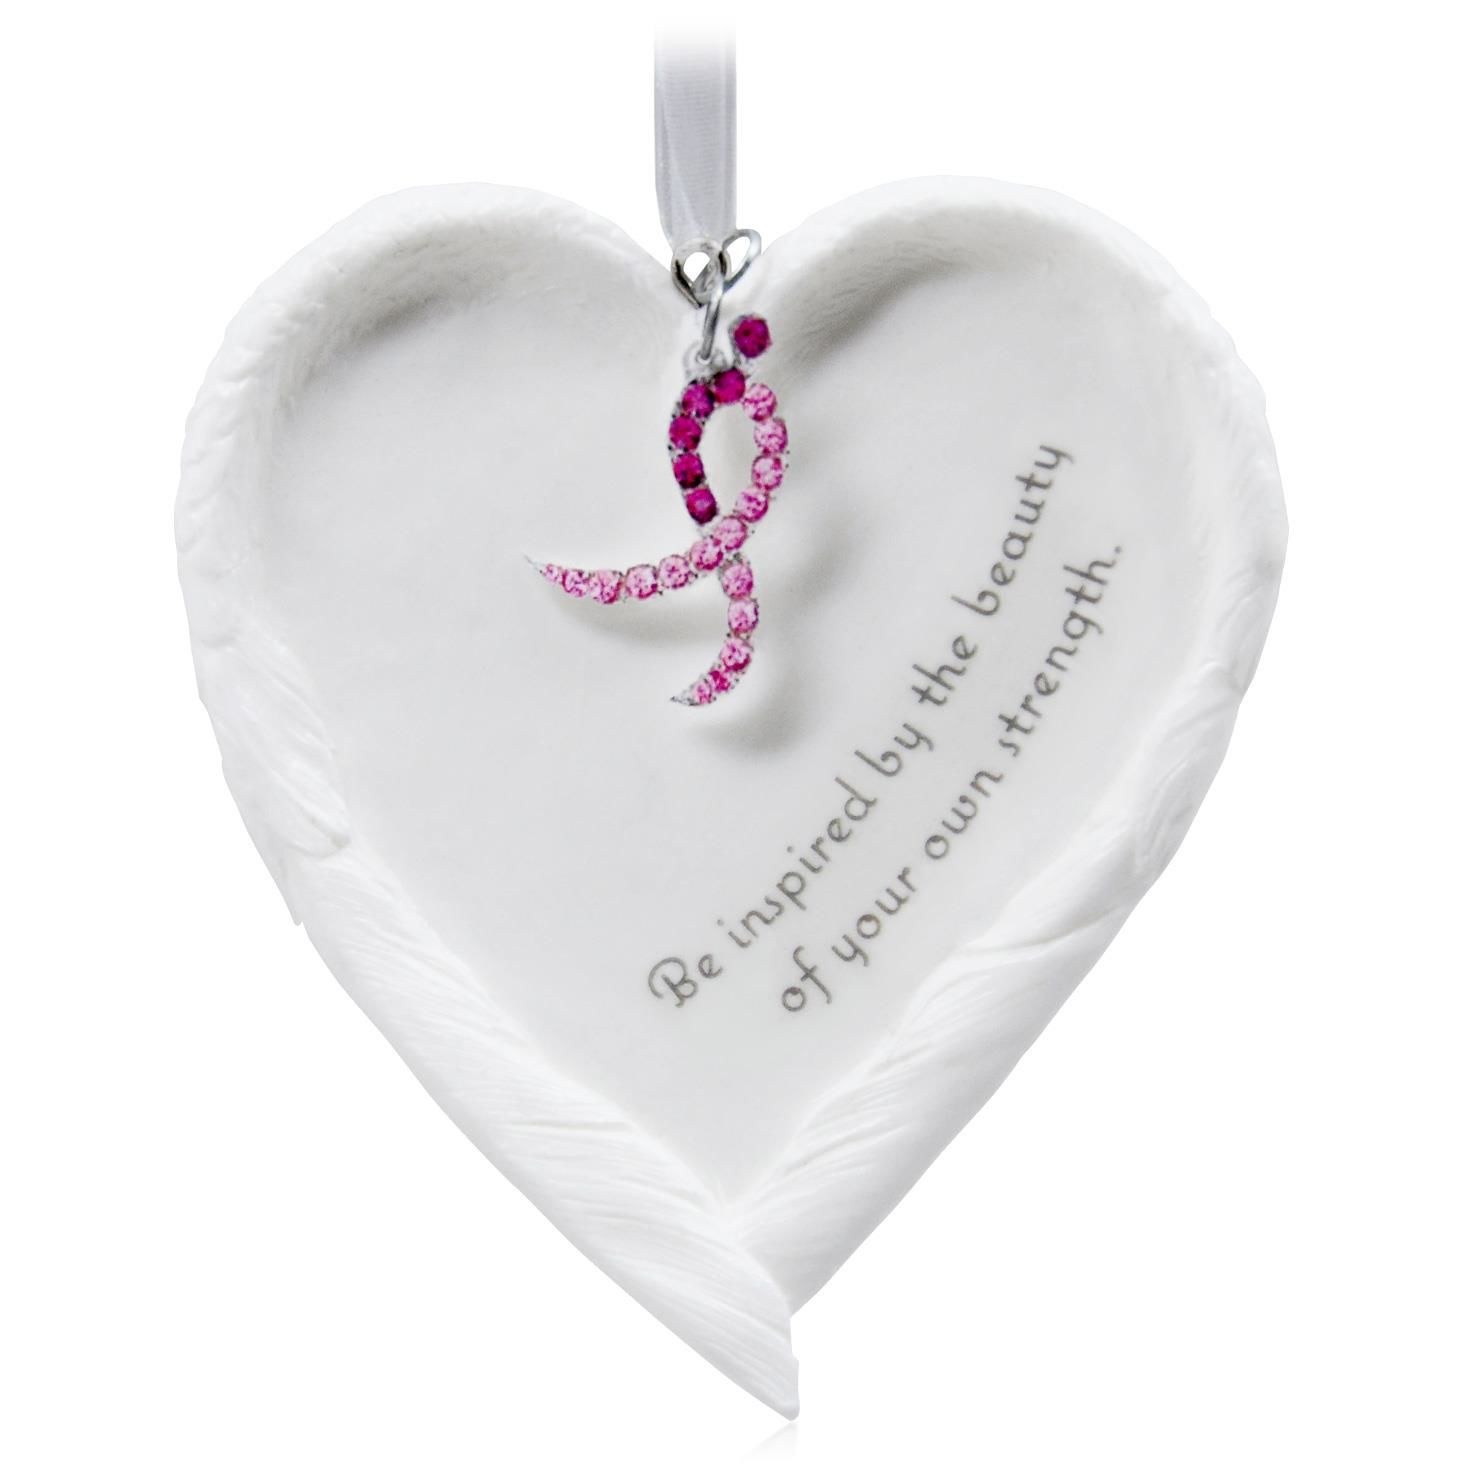 2015 beautiful you susan komen hallmark keepsake ornament hooked on hallmark ornaments